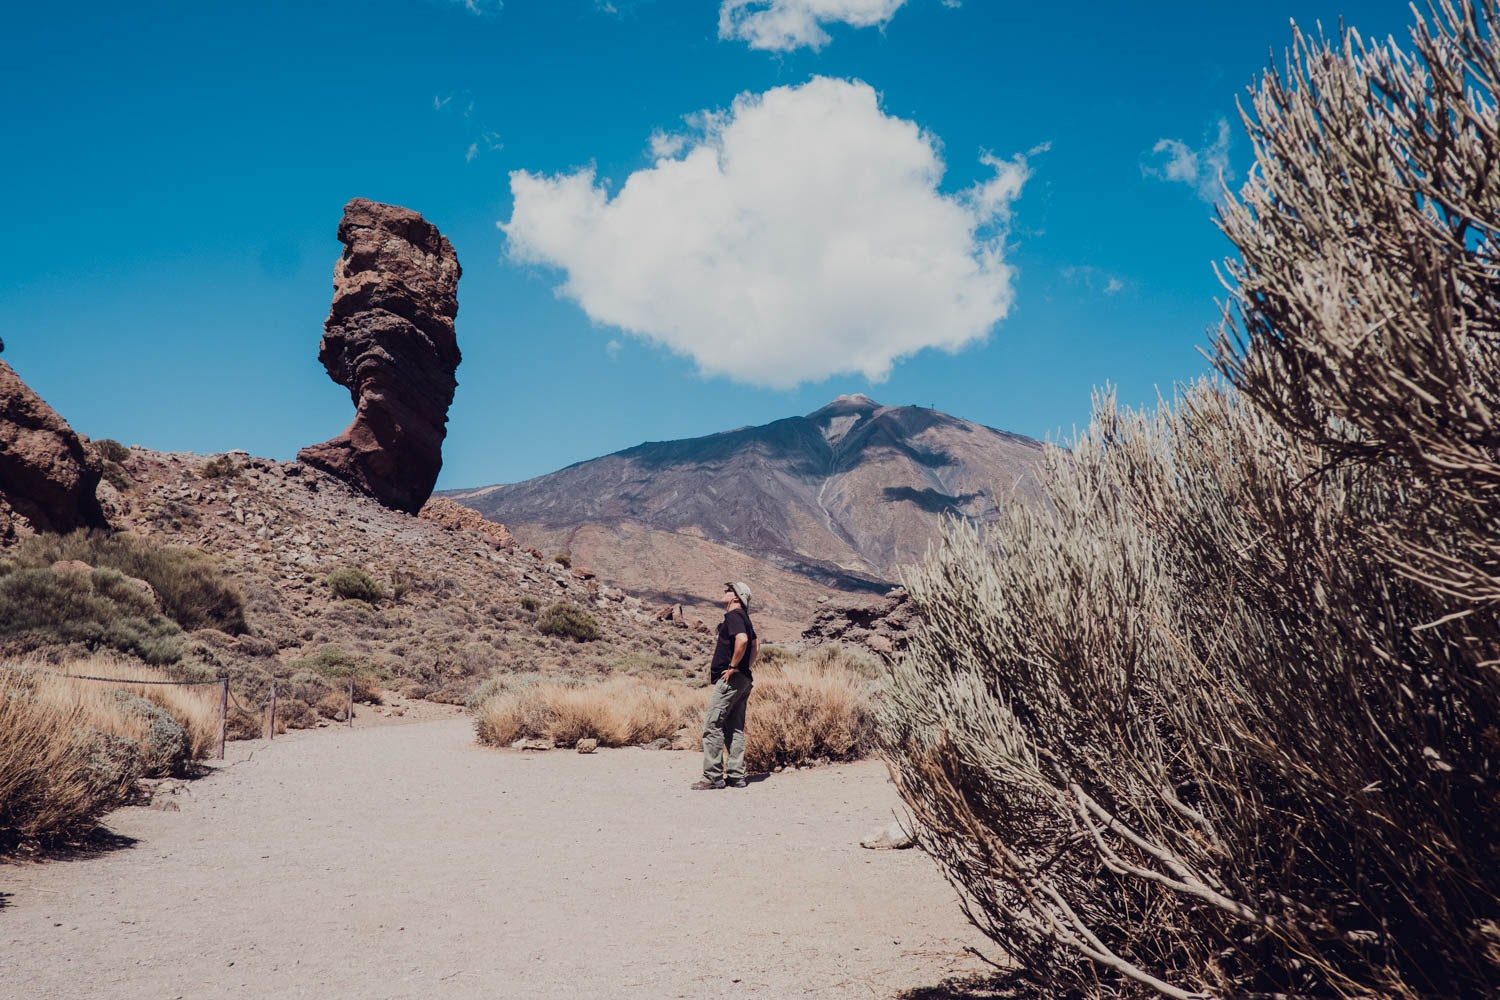 man walking near the Roques de Garcia in Tenerife